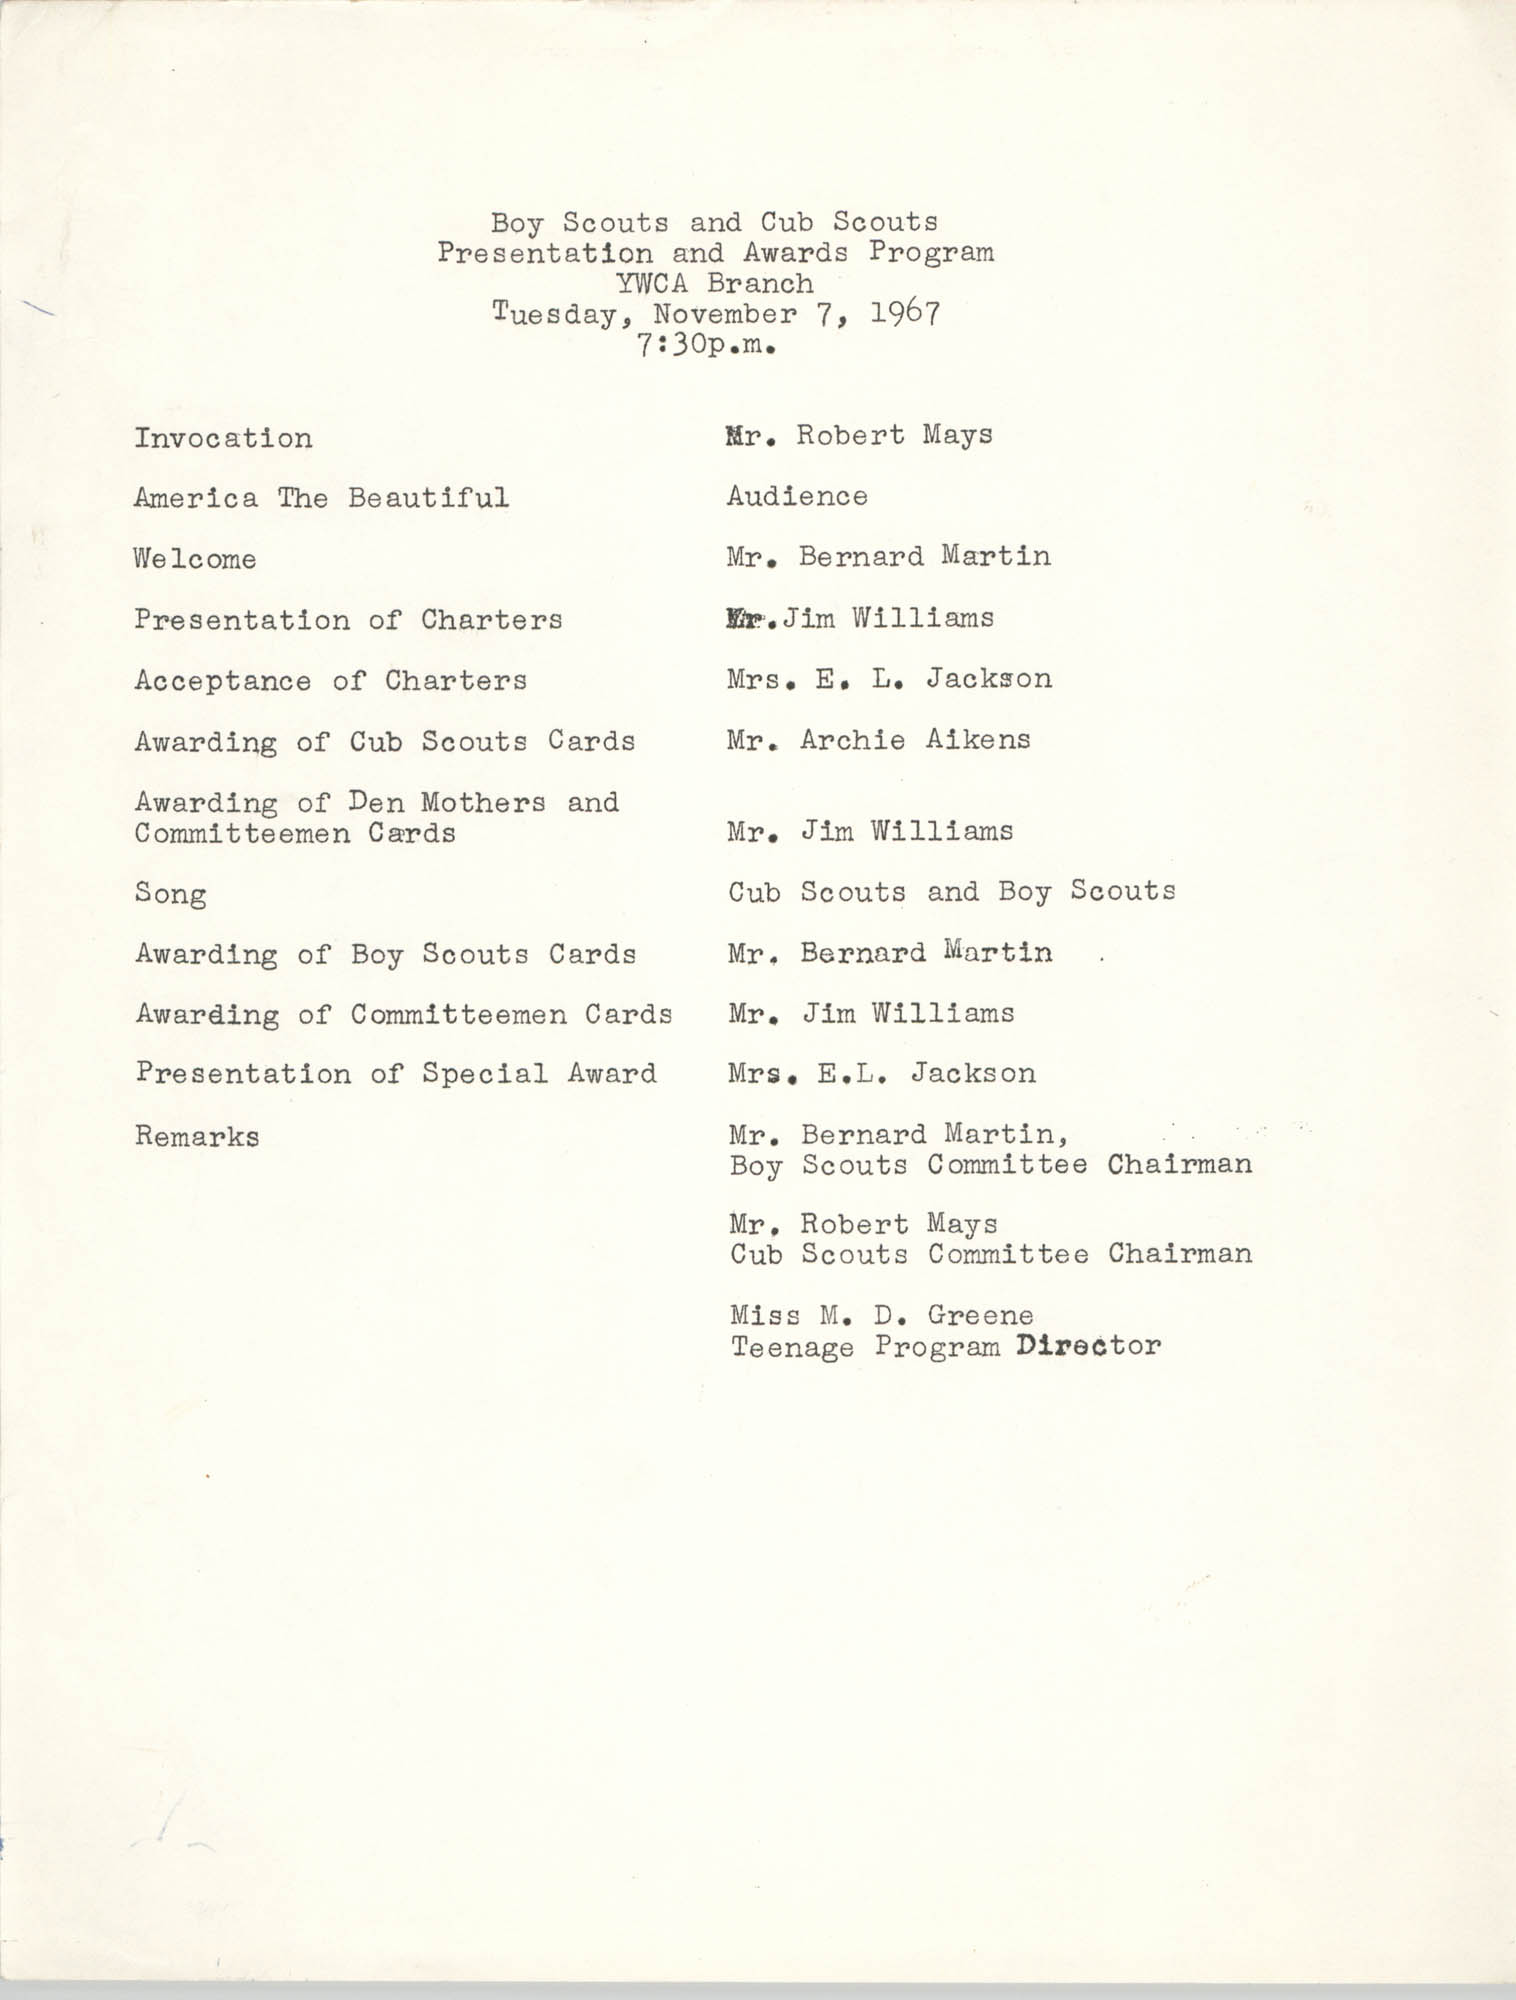 Boy Scouts and Cub Scouts Presentation and Awards Program, Coming Street Y.W.C.A., November 7, 1967